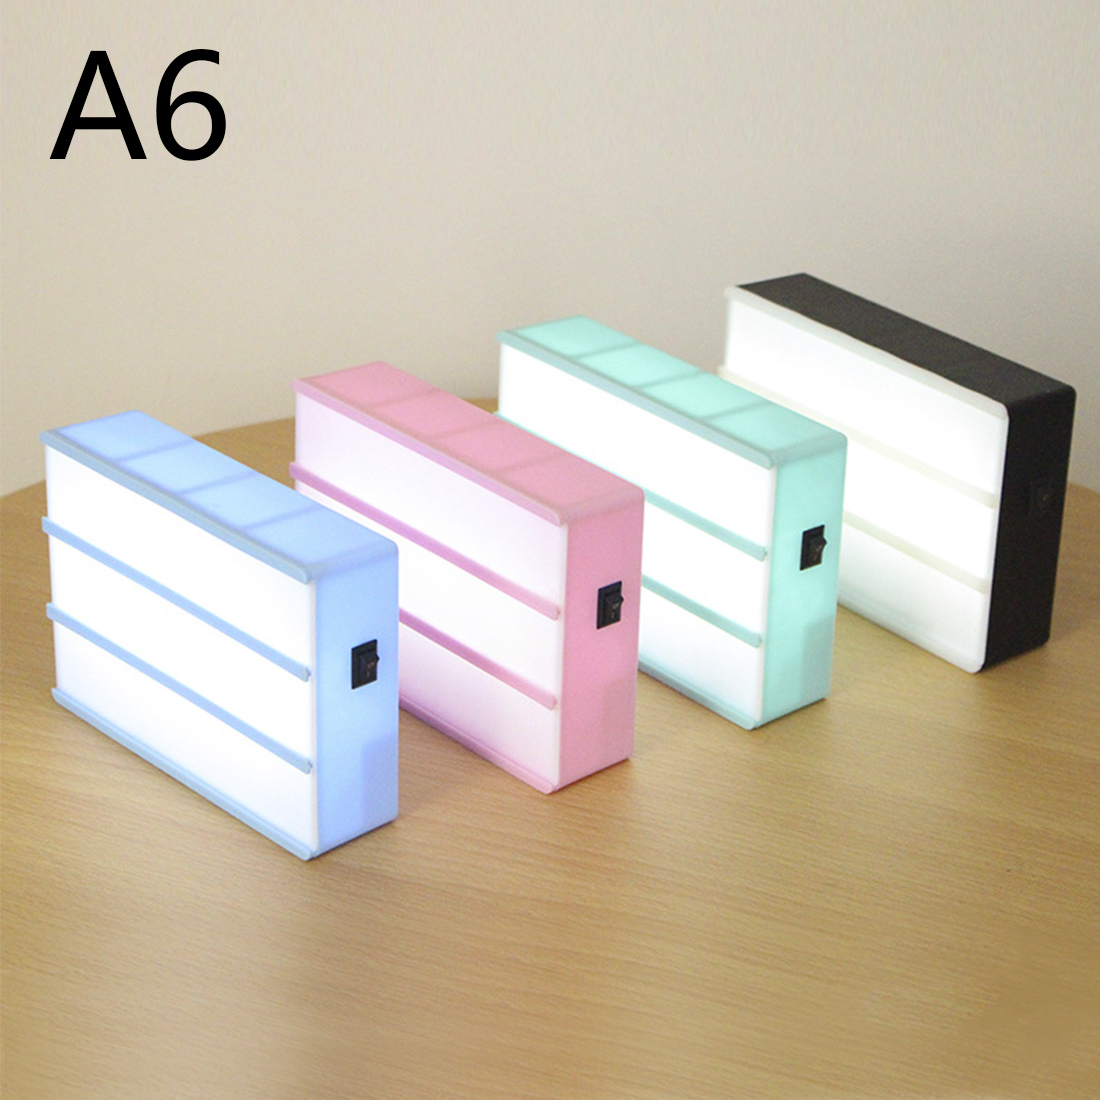 LED Combination Night Light Box Lamp A4 A6 Size DIY BLACK Letters Cards USB PORT Powered Cinema LightboxLED Combination Night Light Box Lamp A4 A6 Size DIY BLACK Letters Cards USB PORT Powered Cinema Lightbox